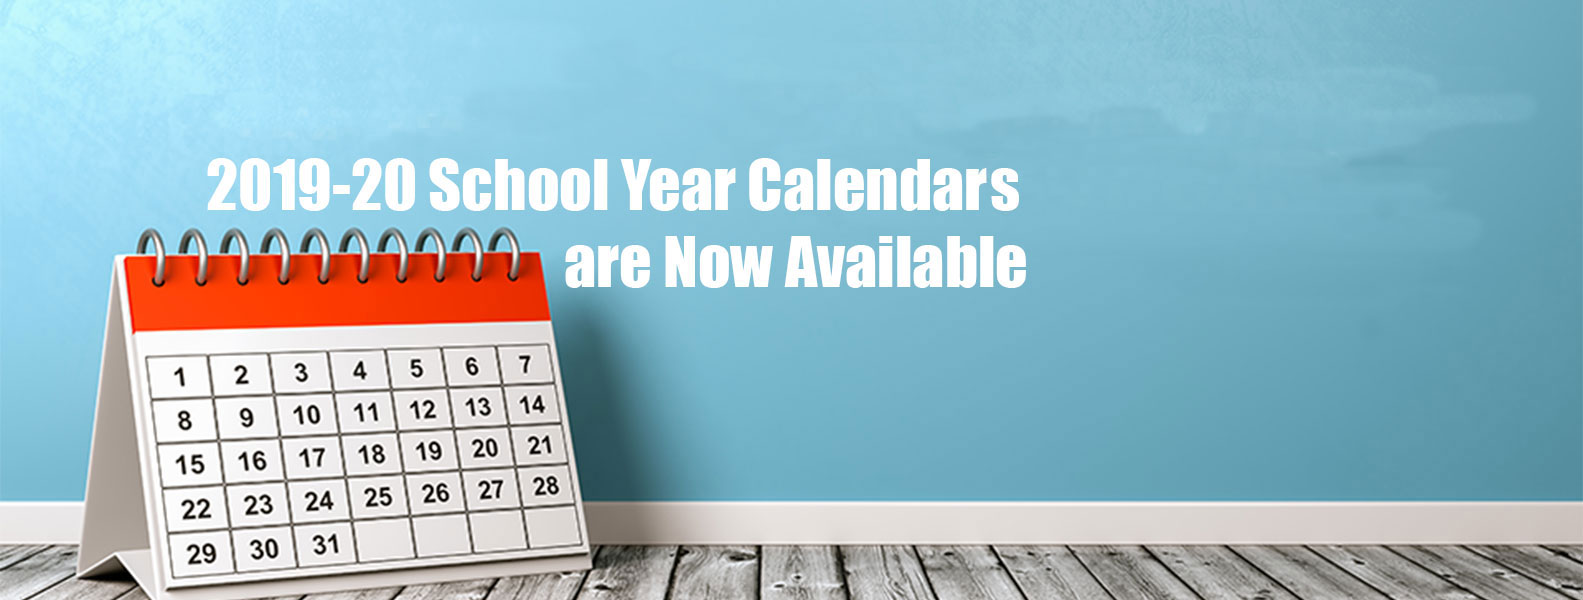 School Year Calendars Set for 2019-20